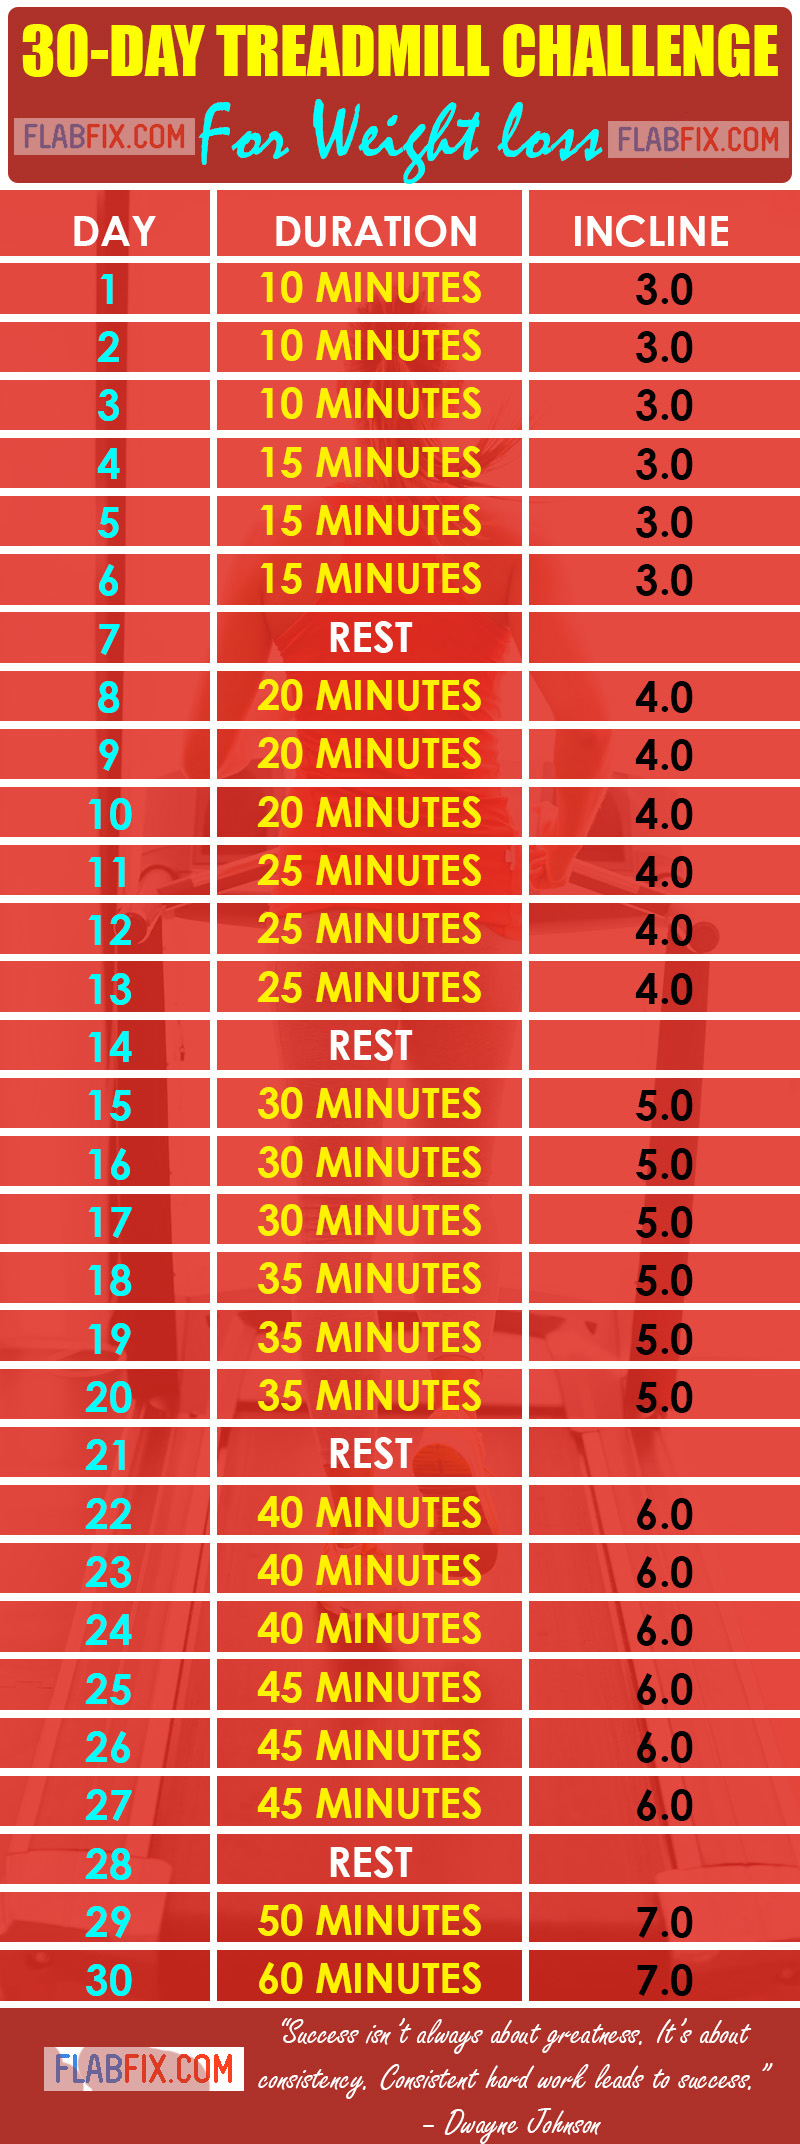 Take on this 30 day treadmill challenge to take your fitness to the next level #treadmill #30day #challenge #flabfix